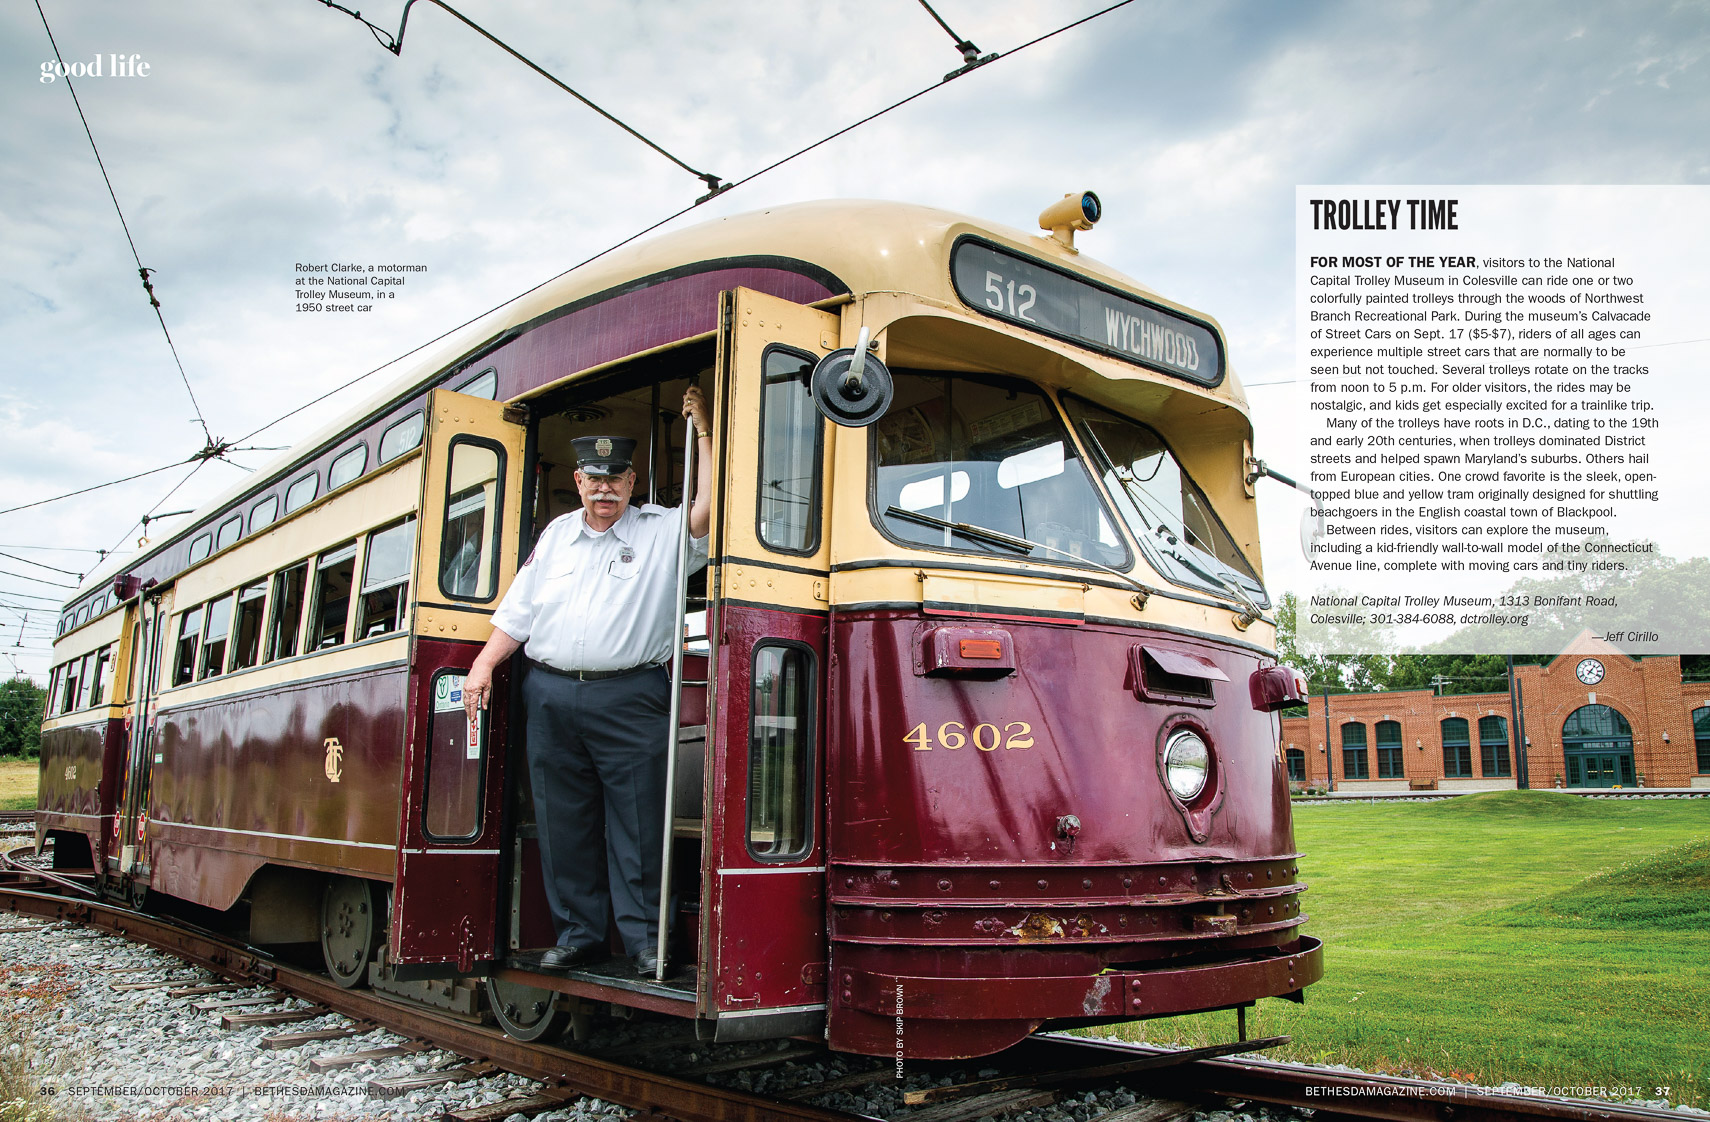 0917_GoodLife_Trolley